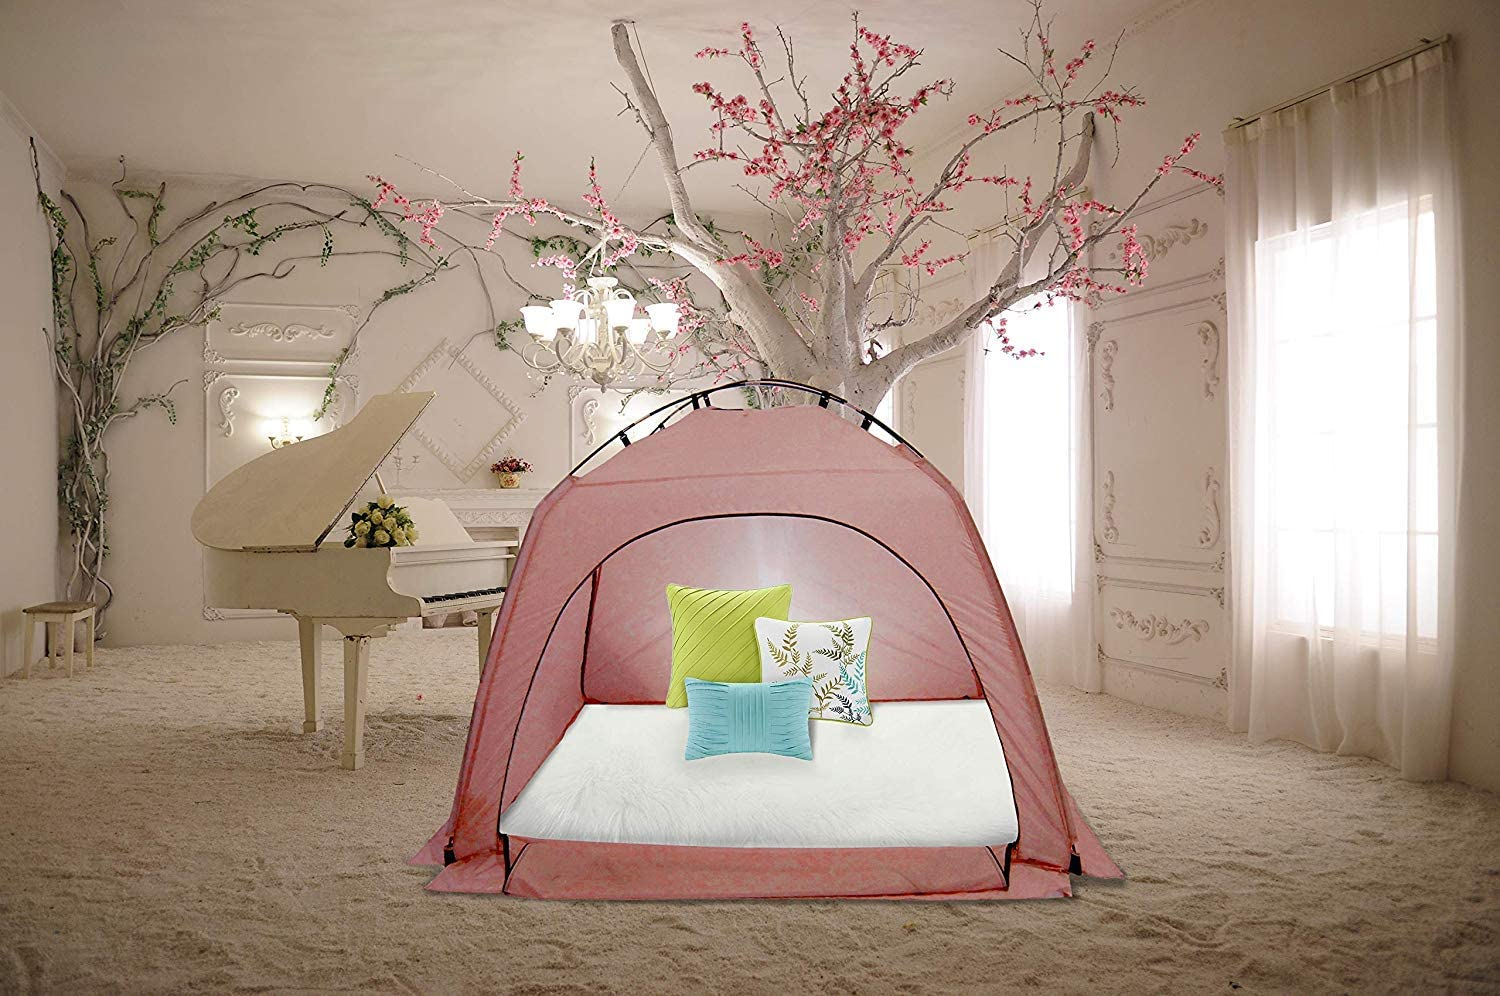 Indoor Warm Tent Privacy Play Tent on Bed Blackout Sleep Cozy in Drafty Room